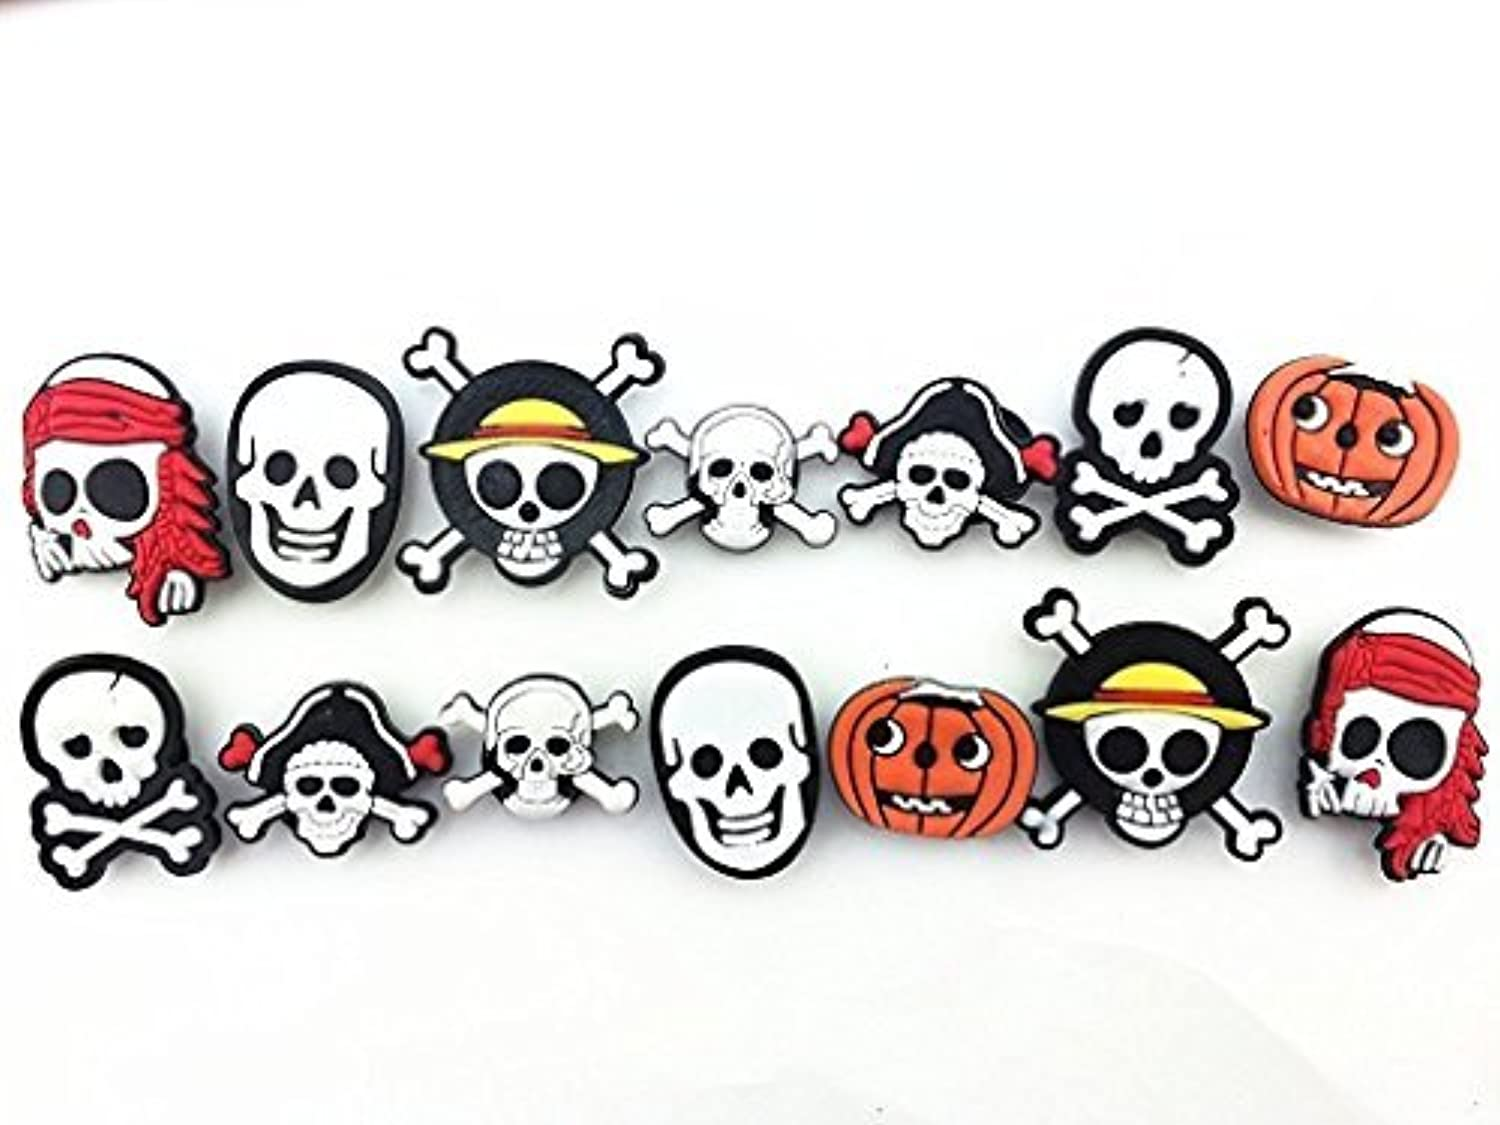 14pc Halloween Pirates Skull Shoe Charms for Croc Shoes Kids Toy & Bracelet Wristband [並行輸入品]